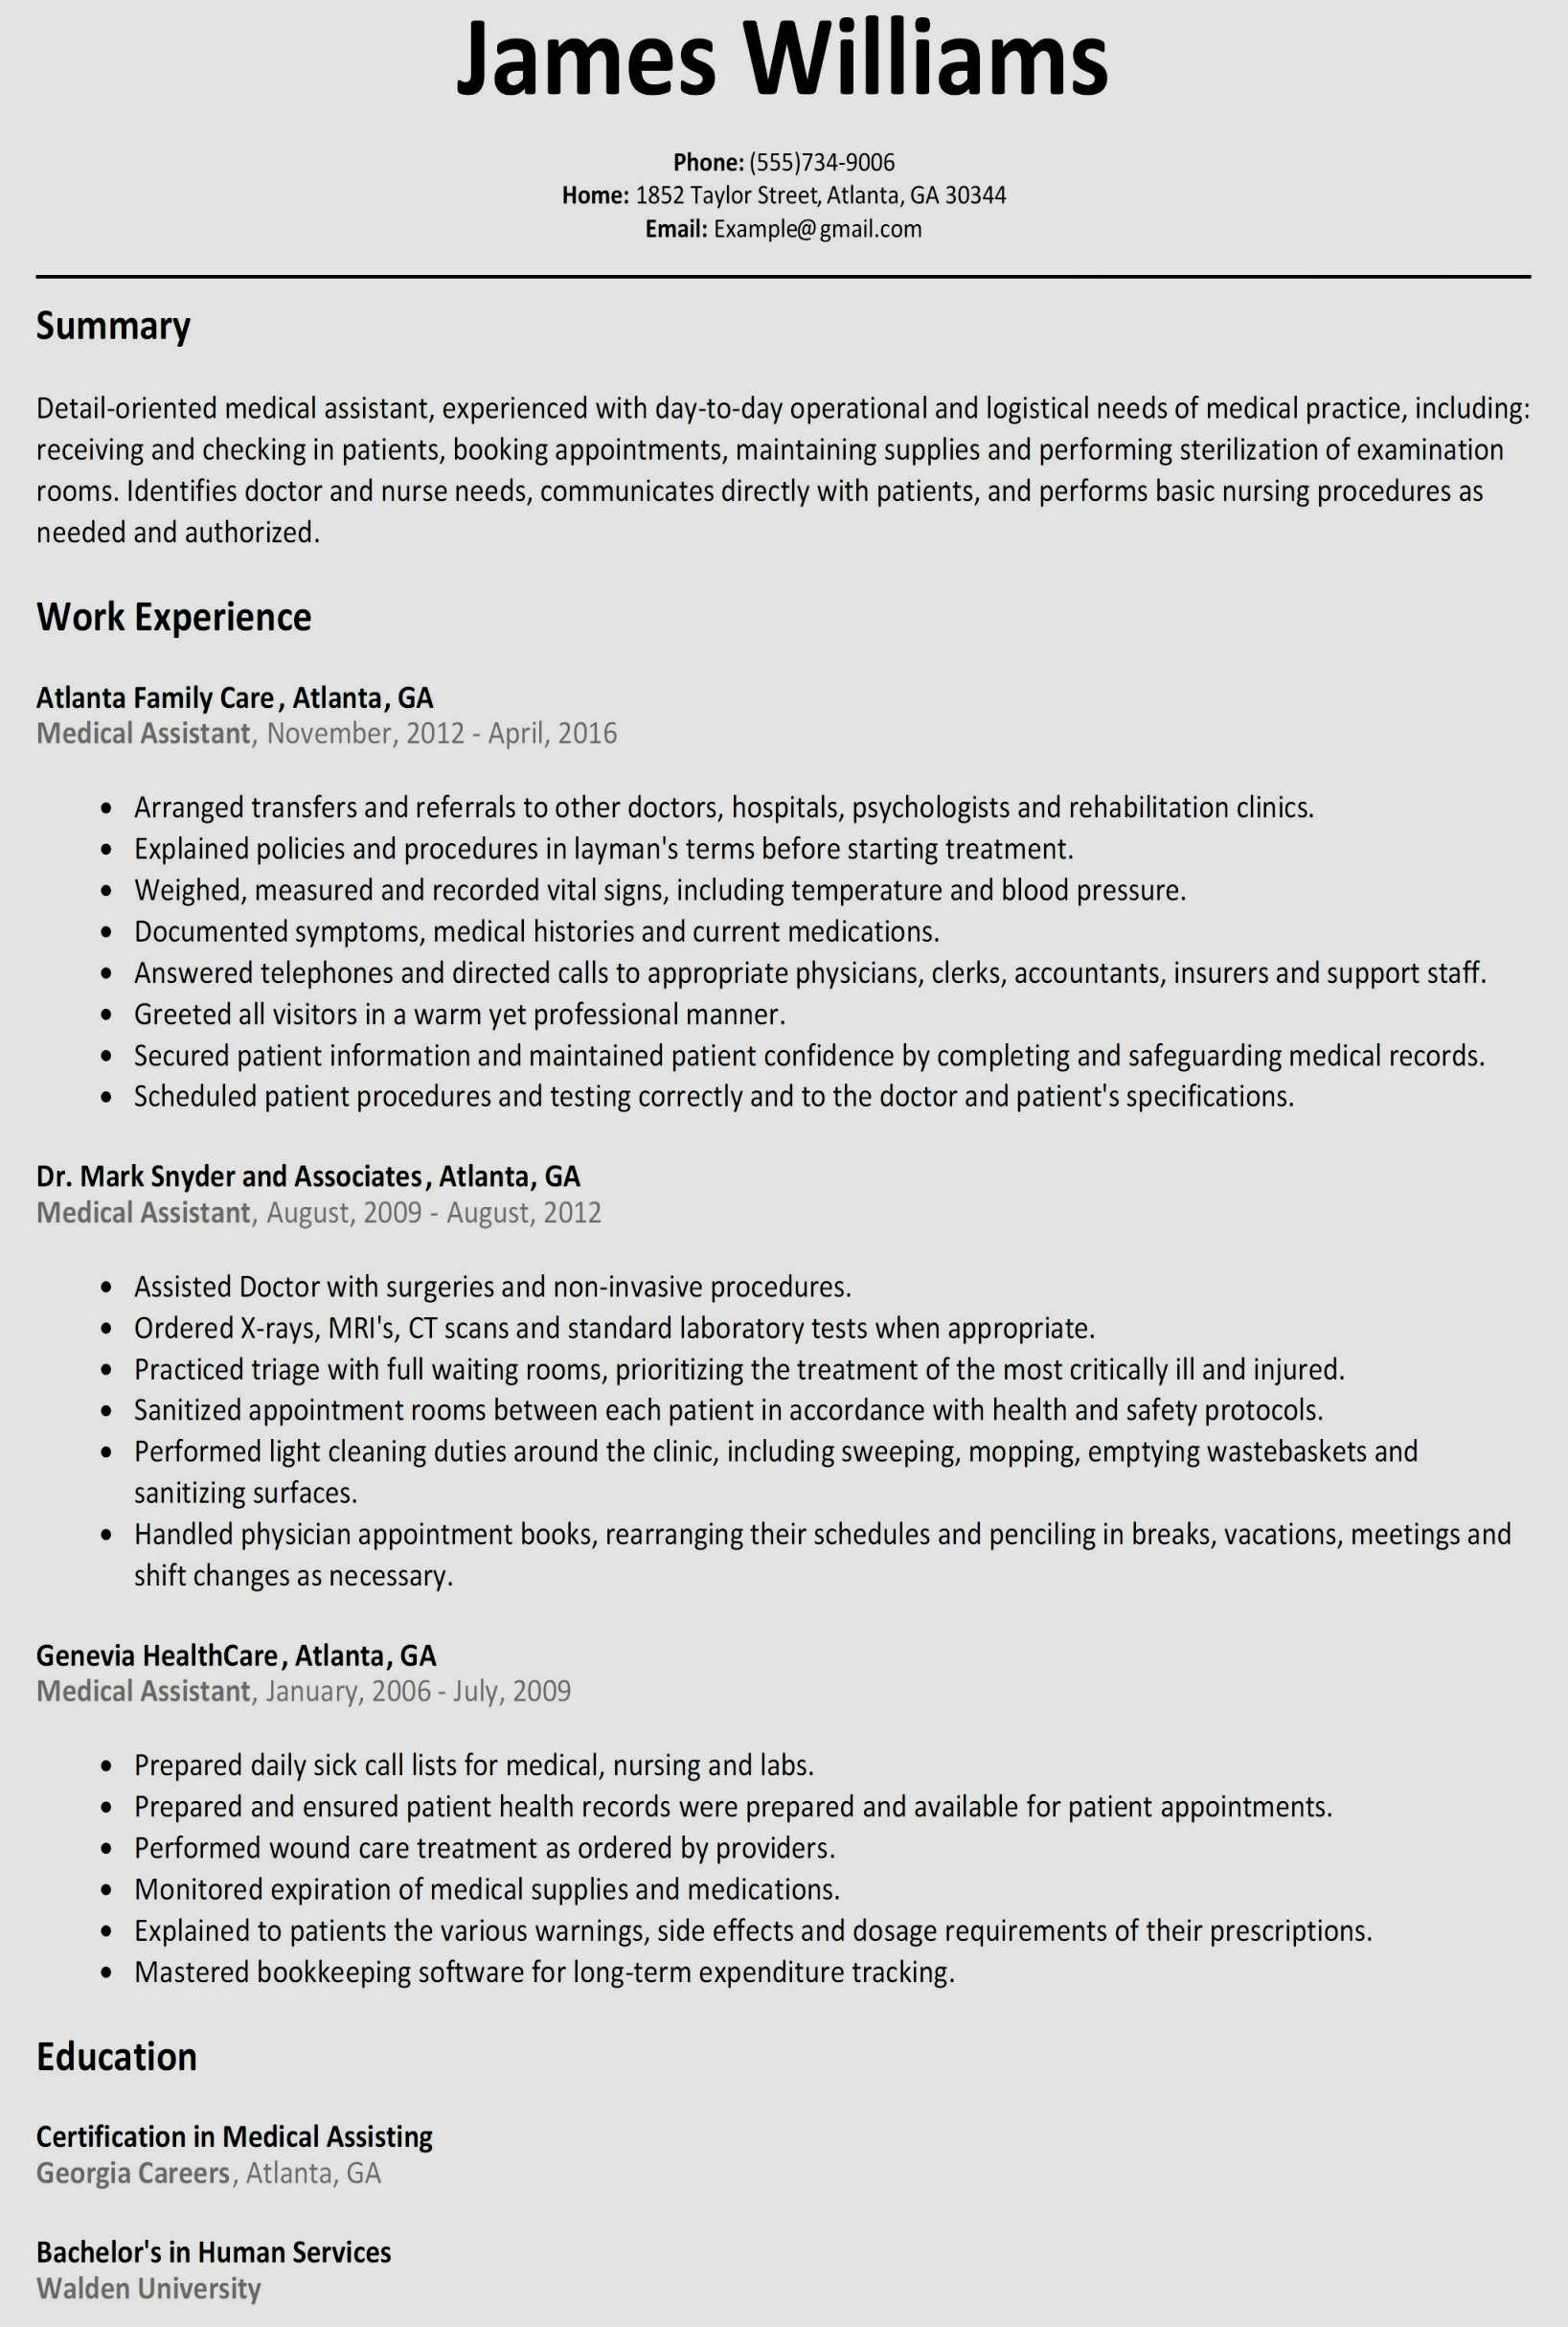 Free Resume Templates Microsoft Word Resume Template On Microsoft Word Professional Resume Template Free Best Free Resume Template For Resume Template On Microsoft Word free resume templates microsoft word|wikiresume.com